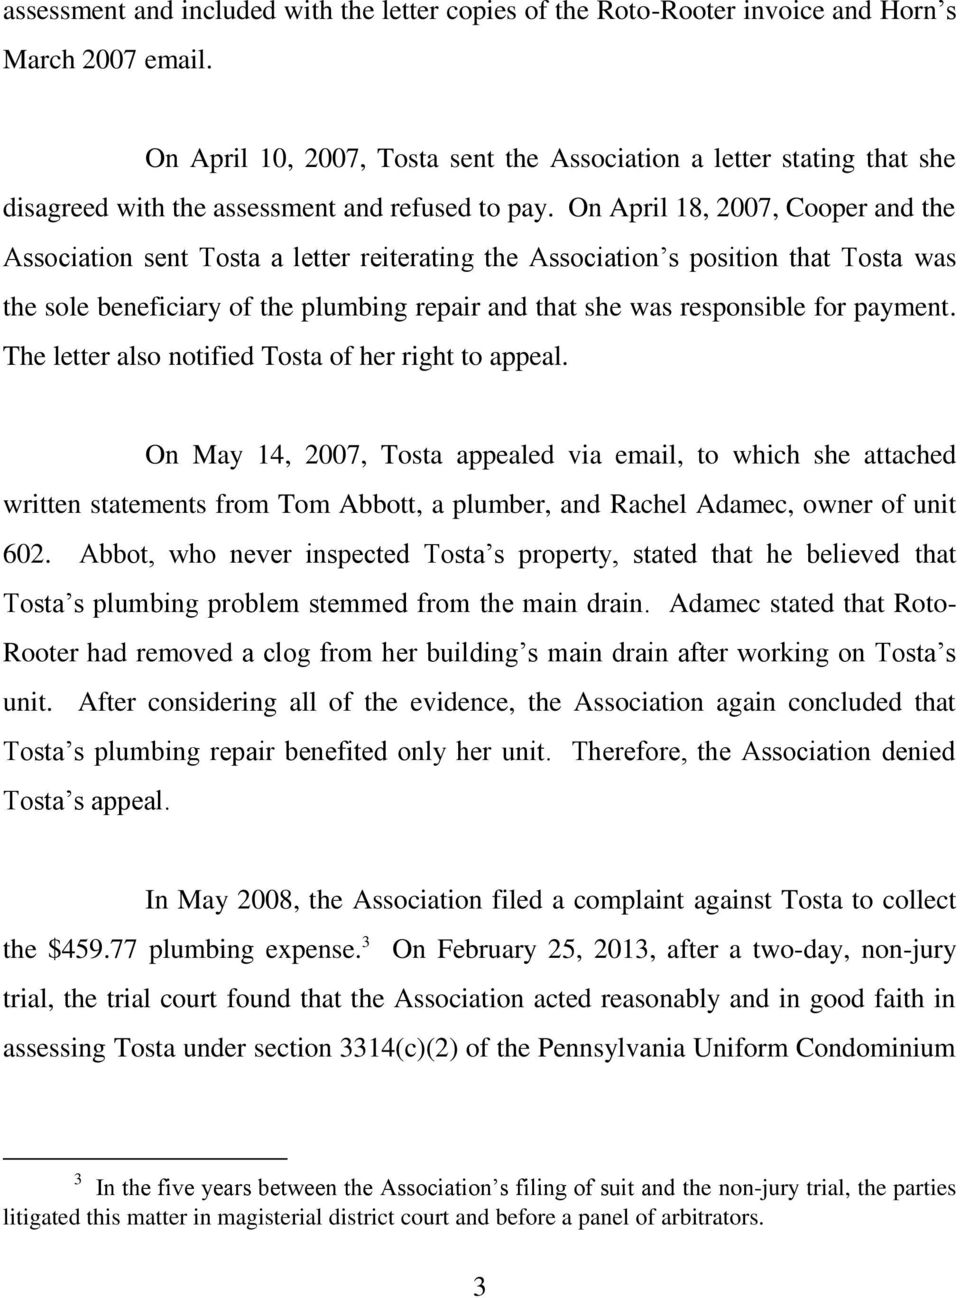 On April 18, 2007, Cooper and the Association sent Tosta a letter reiterating the Association s position that Tosta was the sole beneficiary of the plumbing repair and that she was responsible for